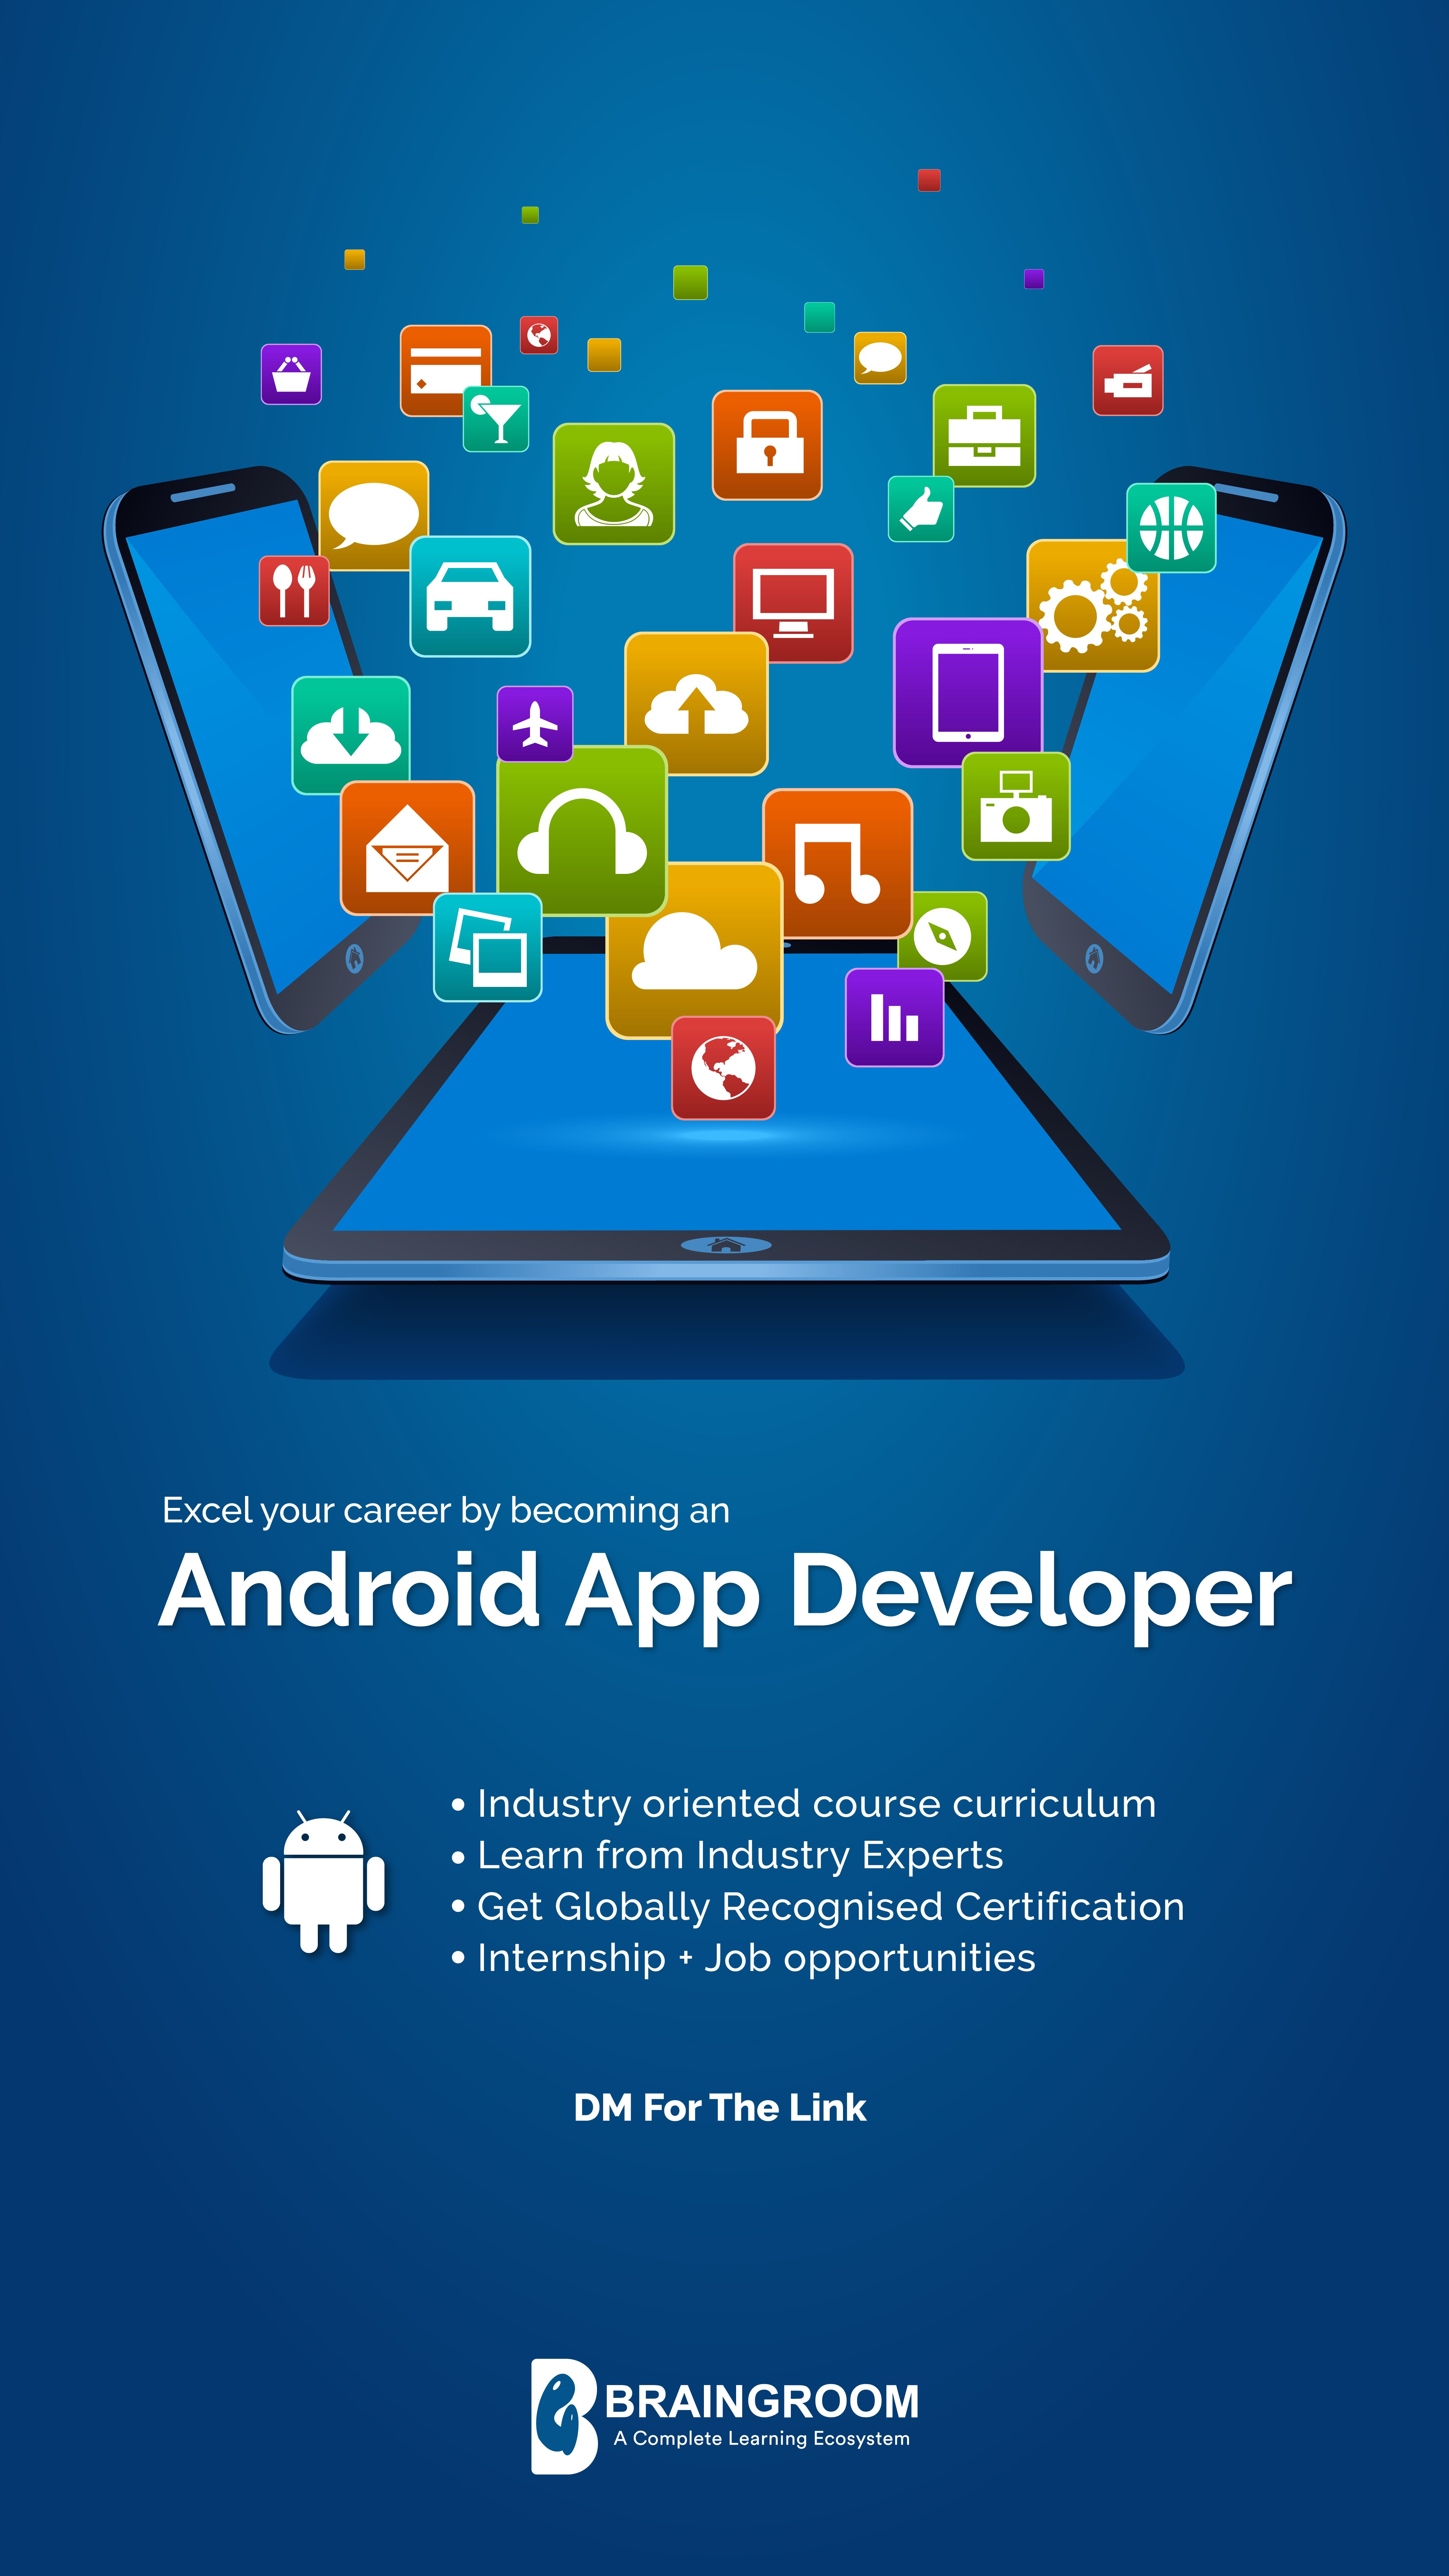 Boost your career by an Advanced Android App